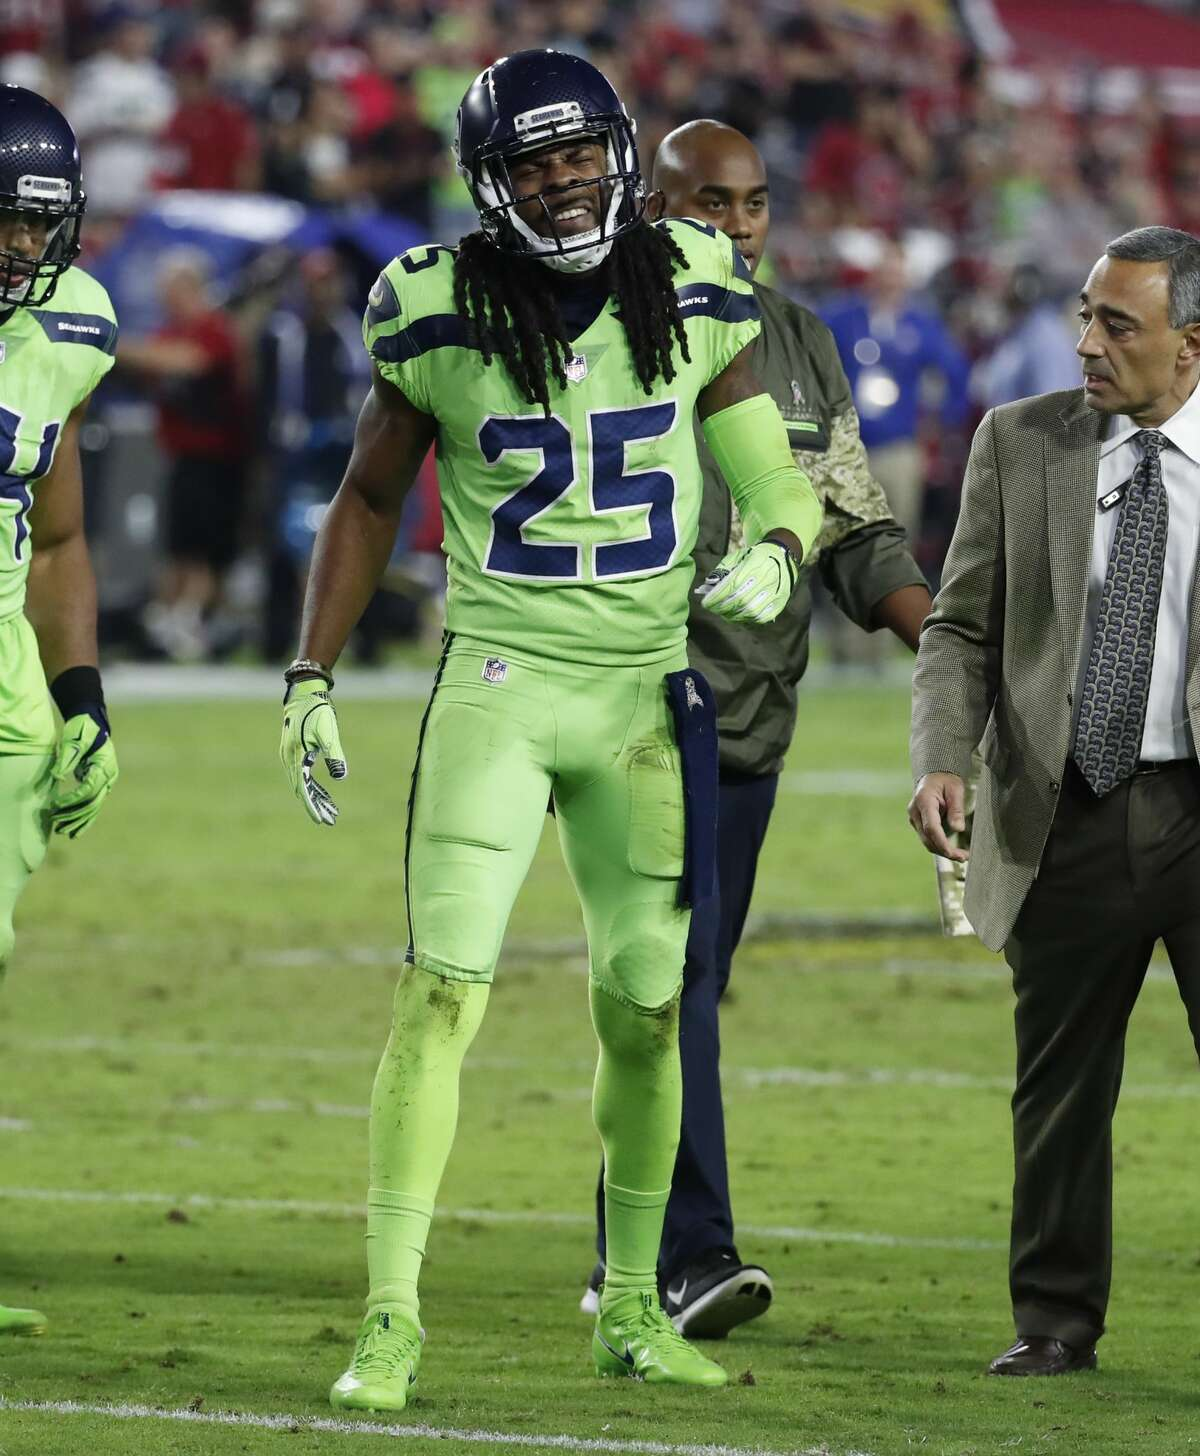 Richard Sherman limped off the field with a foot injury in the third quarter against the Arizona Cardinals.When Griffin returned, Lane came in to fill in for Sherman, who was shown on the broadcast replays seemingly telling teammates on the sideline: